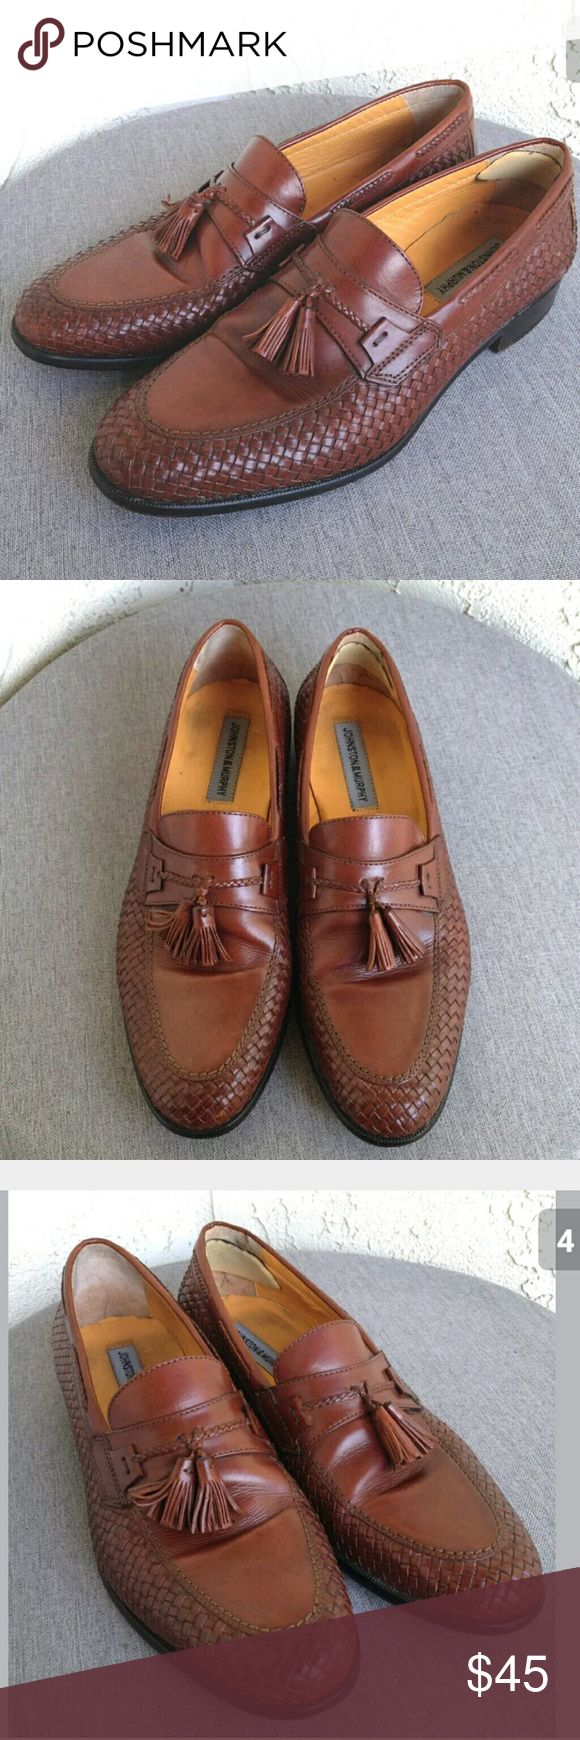 Johnston Murphy Mens Slip On Dress Shoes Sz 10.5 Johnston Murphy Mens Shoes Brown Woven Leather Dress Casual Slip On Loafer Size 10.5 - Great Preowned Condition...Enjoy!  Type: Shoes Style: Dress Casual Woven Leather Slip On Tassel Loafer  Brand: Johnston & Murphy Size: 10.5 Material: Leather Color: Brown Condition: Great Preowned Condition  Country of Manufacturer: India Stock Number: 0011 Vintage Shoes Loafers & Slip-Ons